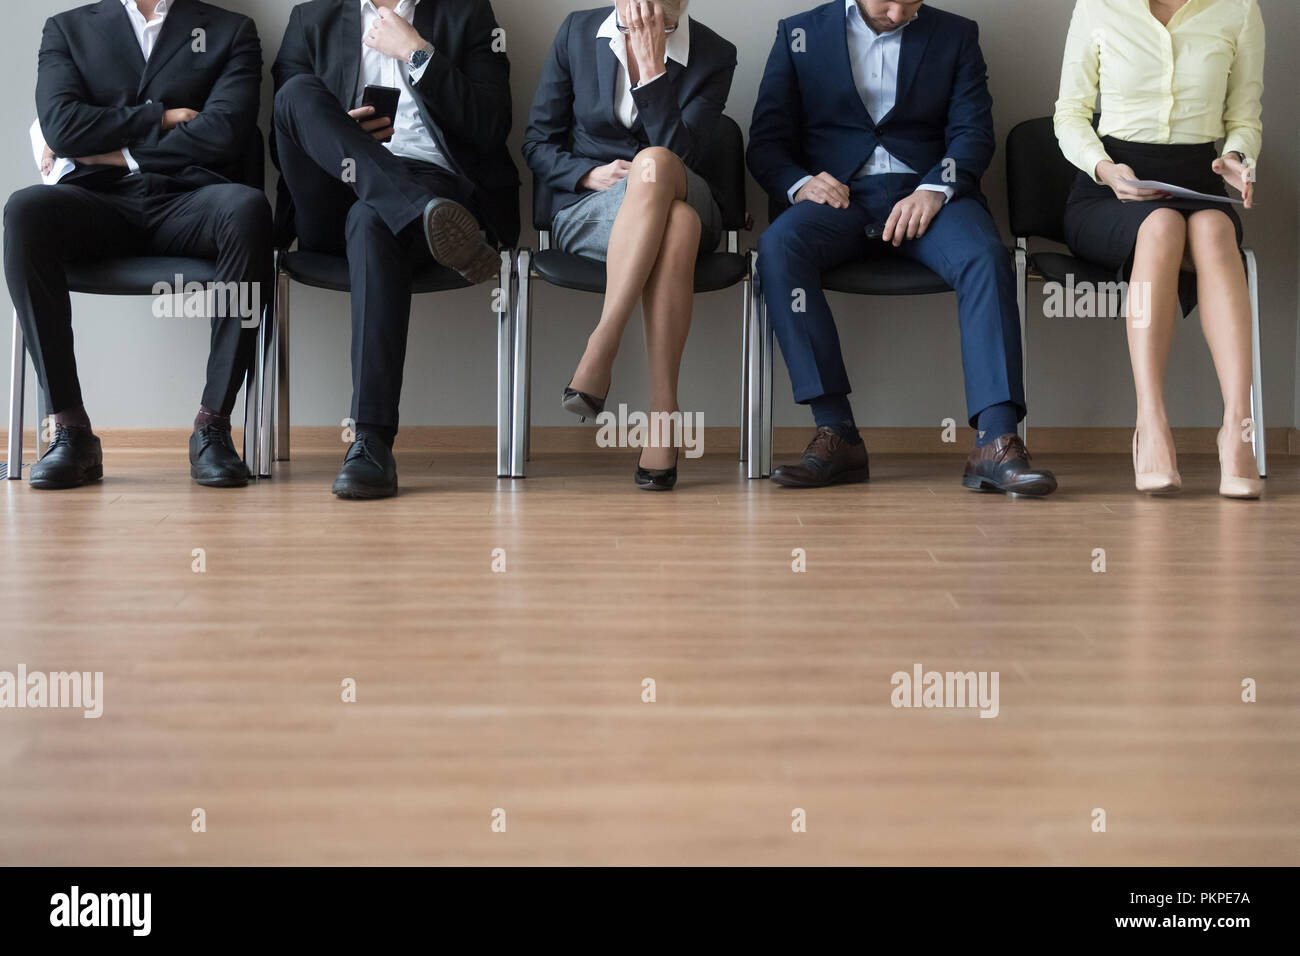 Businesspeople legs sitting in chair in queue wait job interview - Stock Image